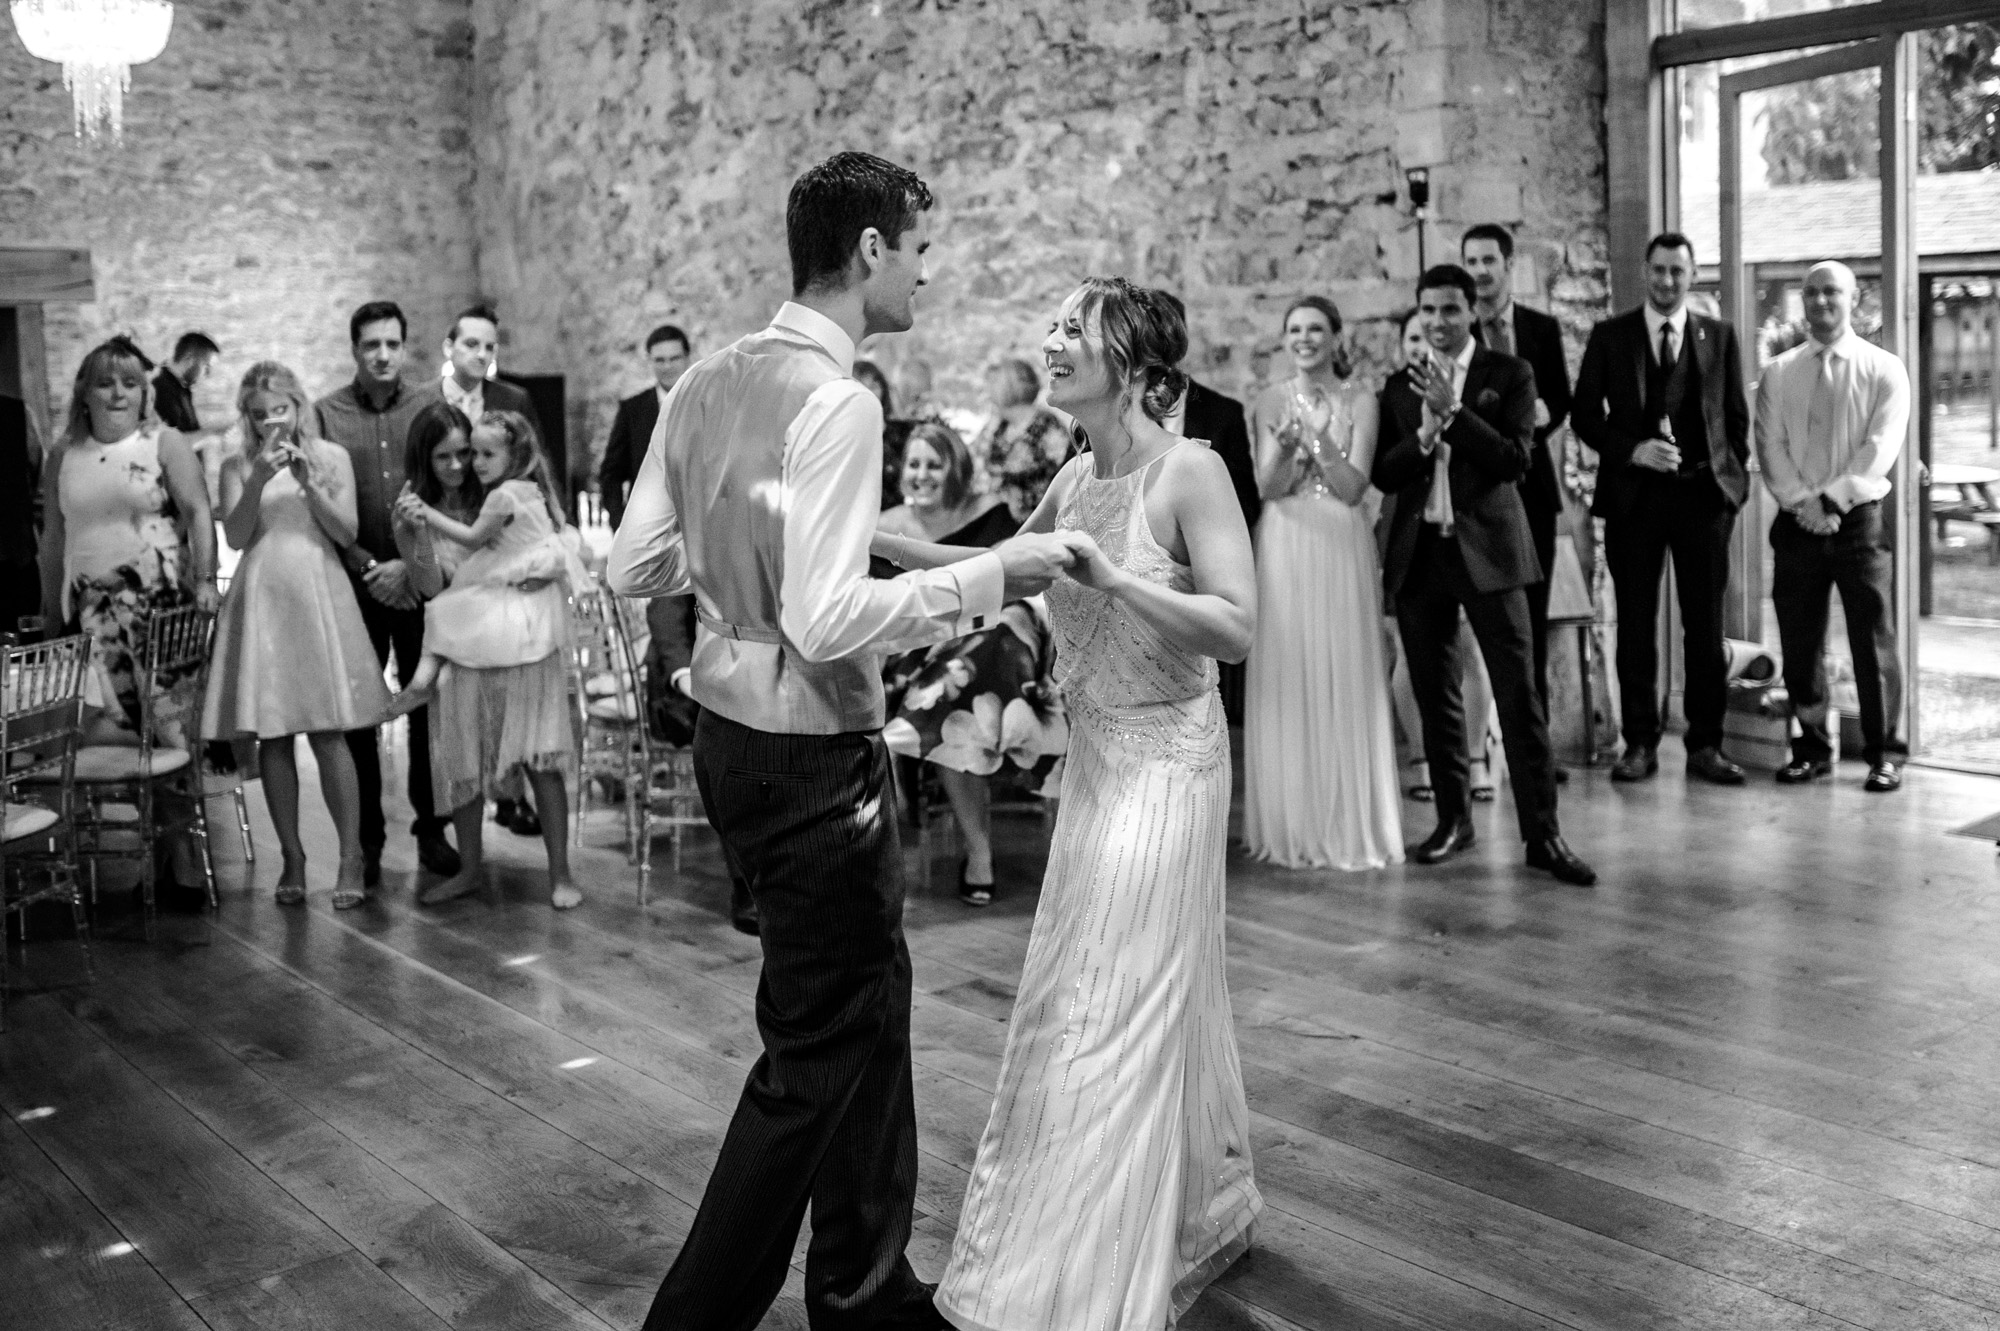 Notley Barn Wedding 26.10.18 33.jpg